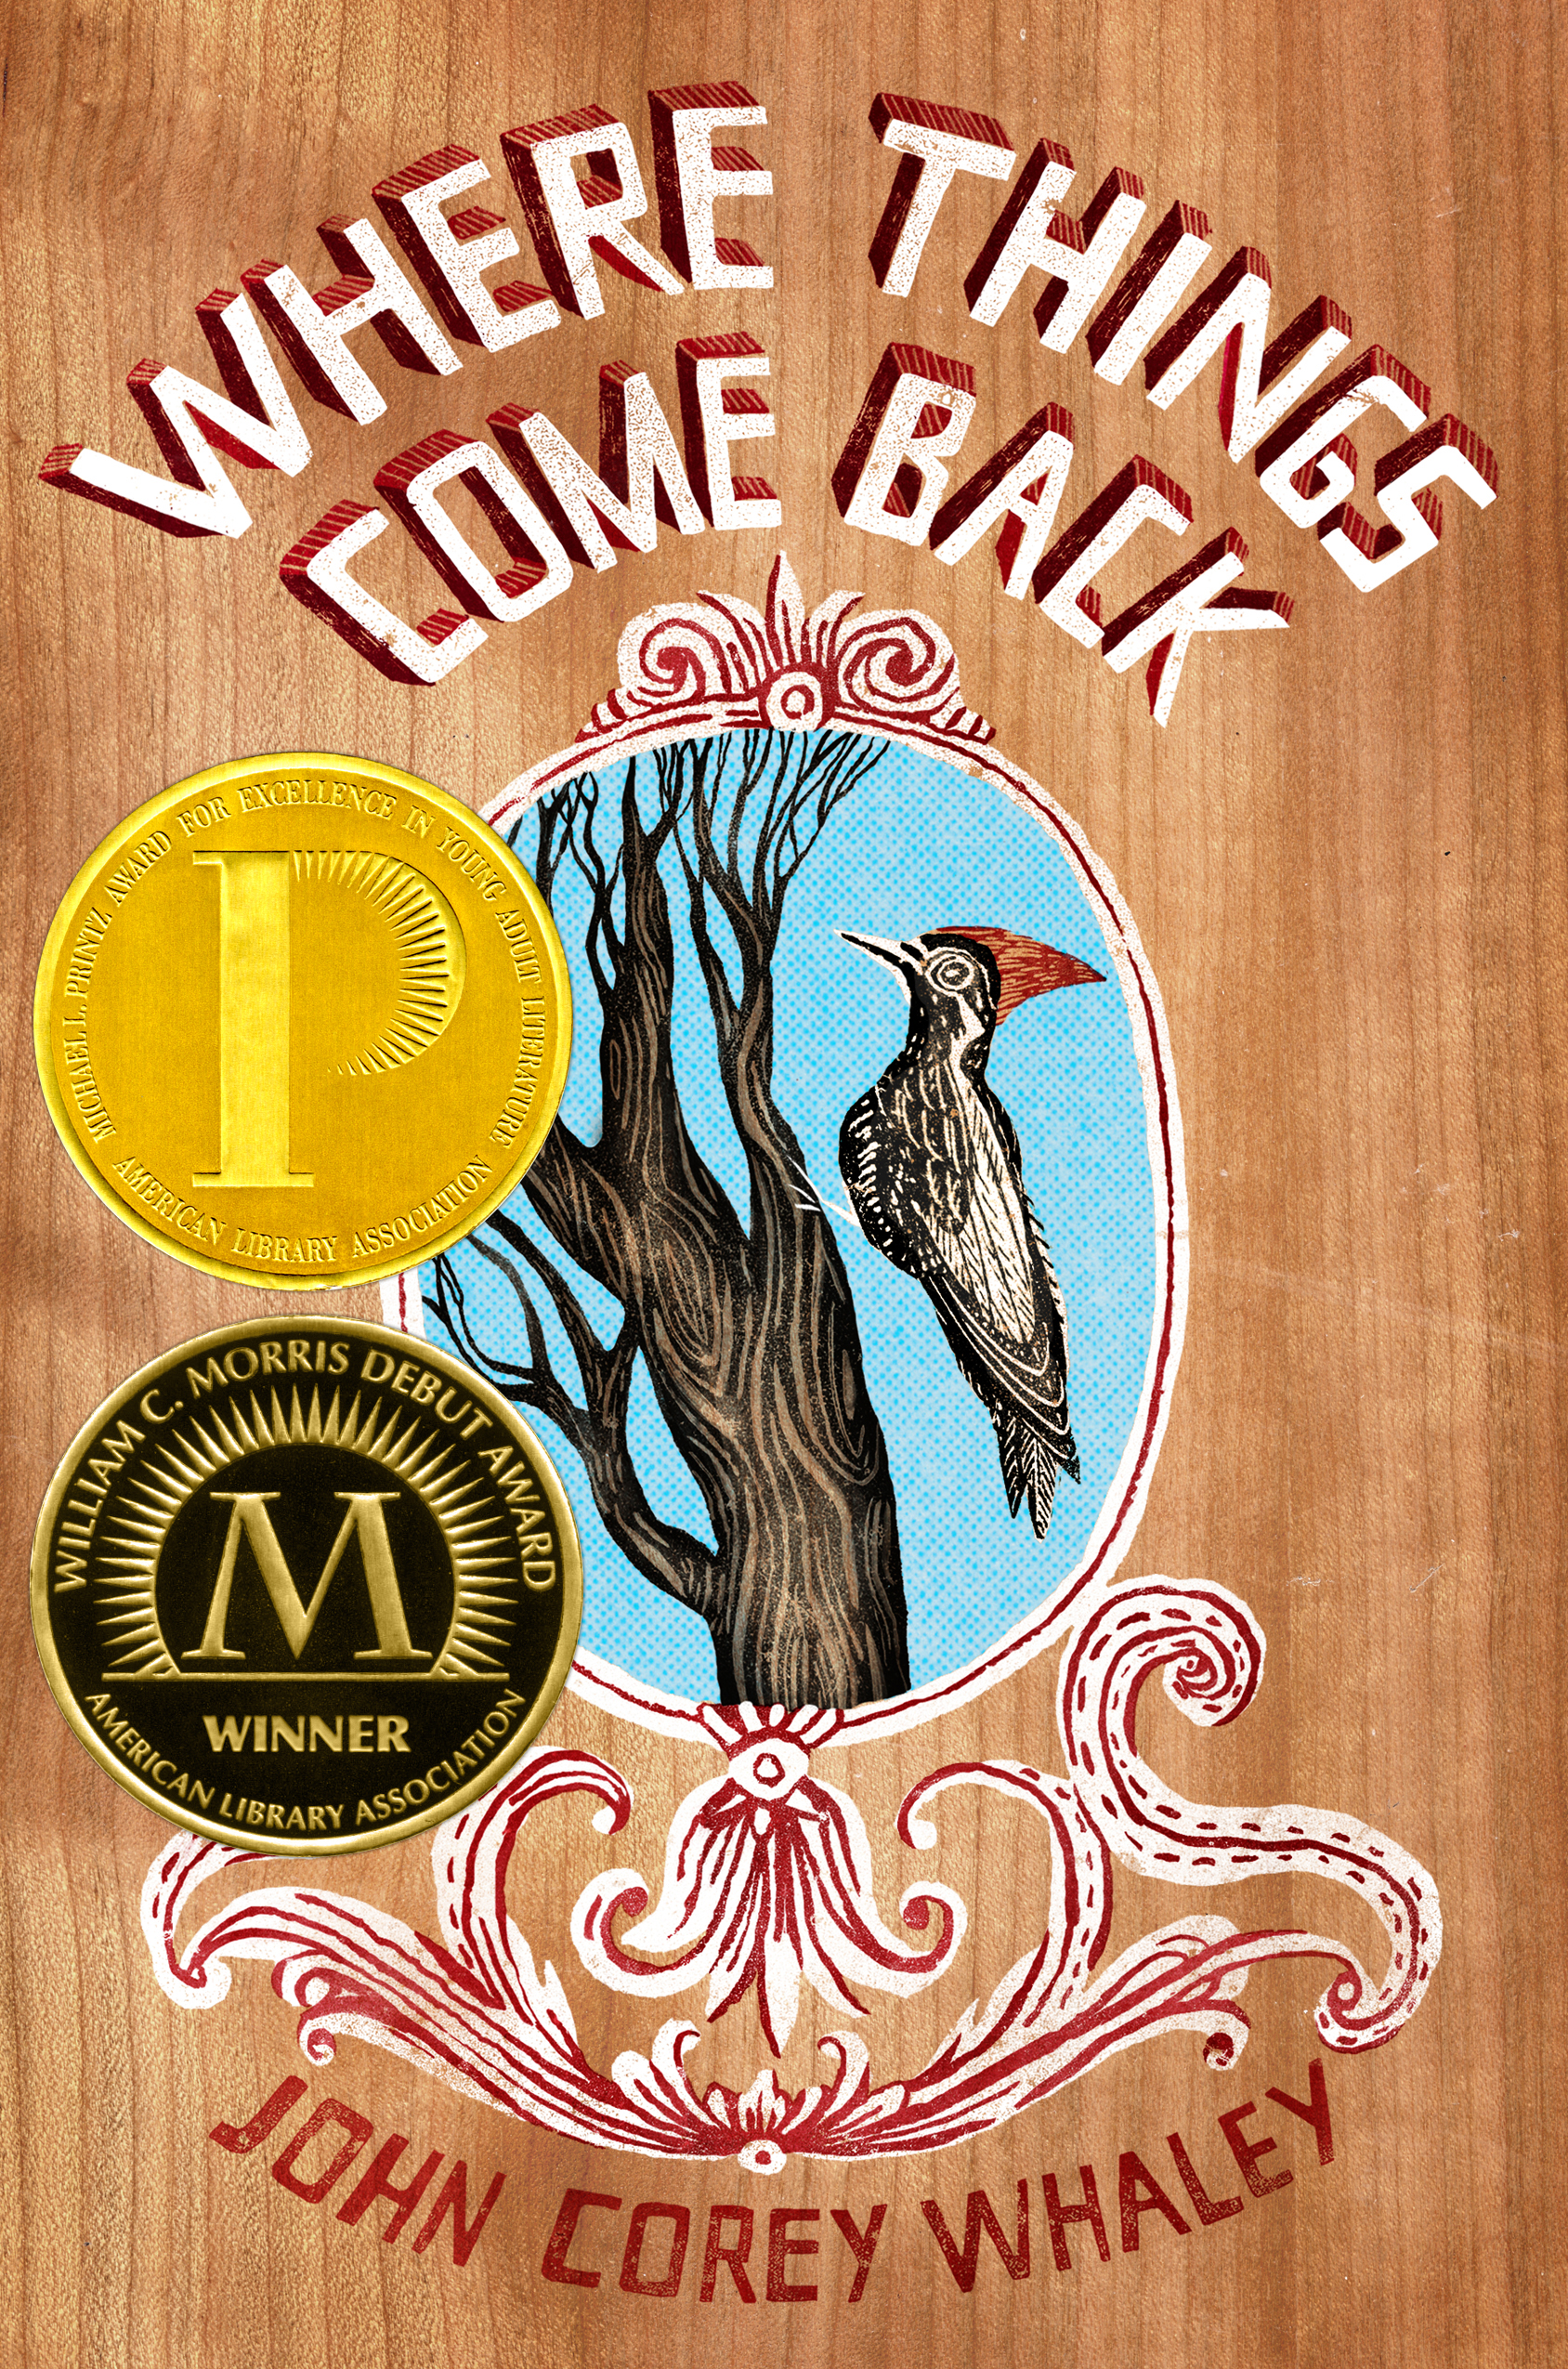 Where Things Come Back   Book by John Corey Whaley   Official Publisher  Page   Simon & Schuster